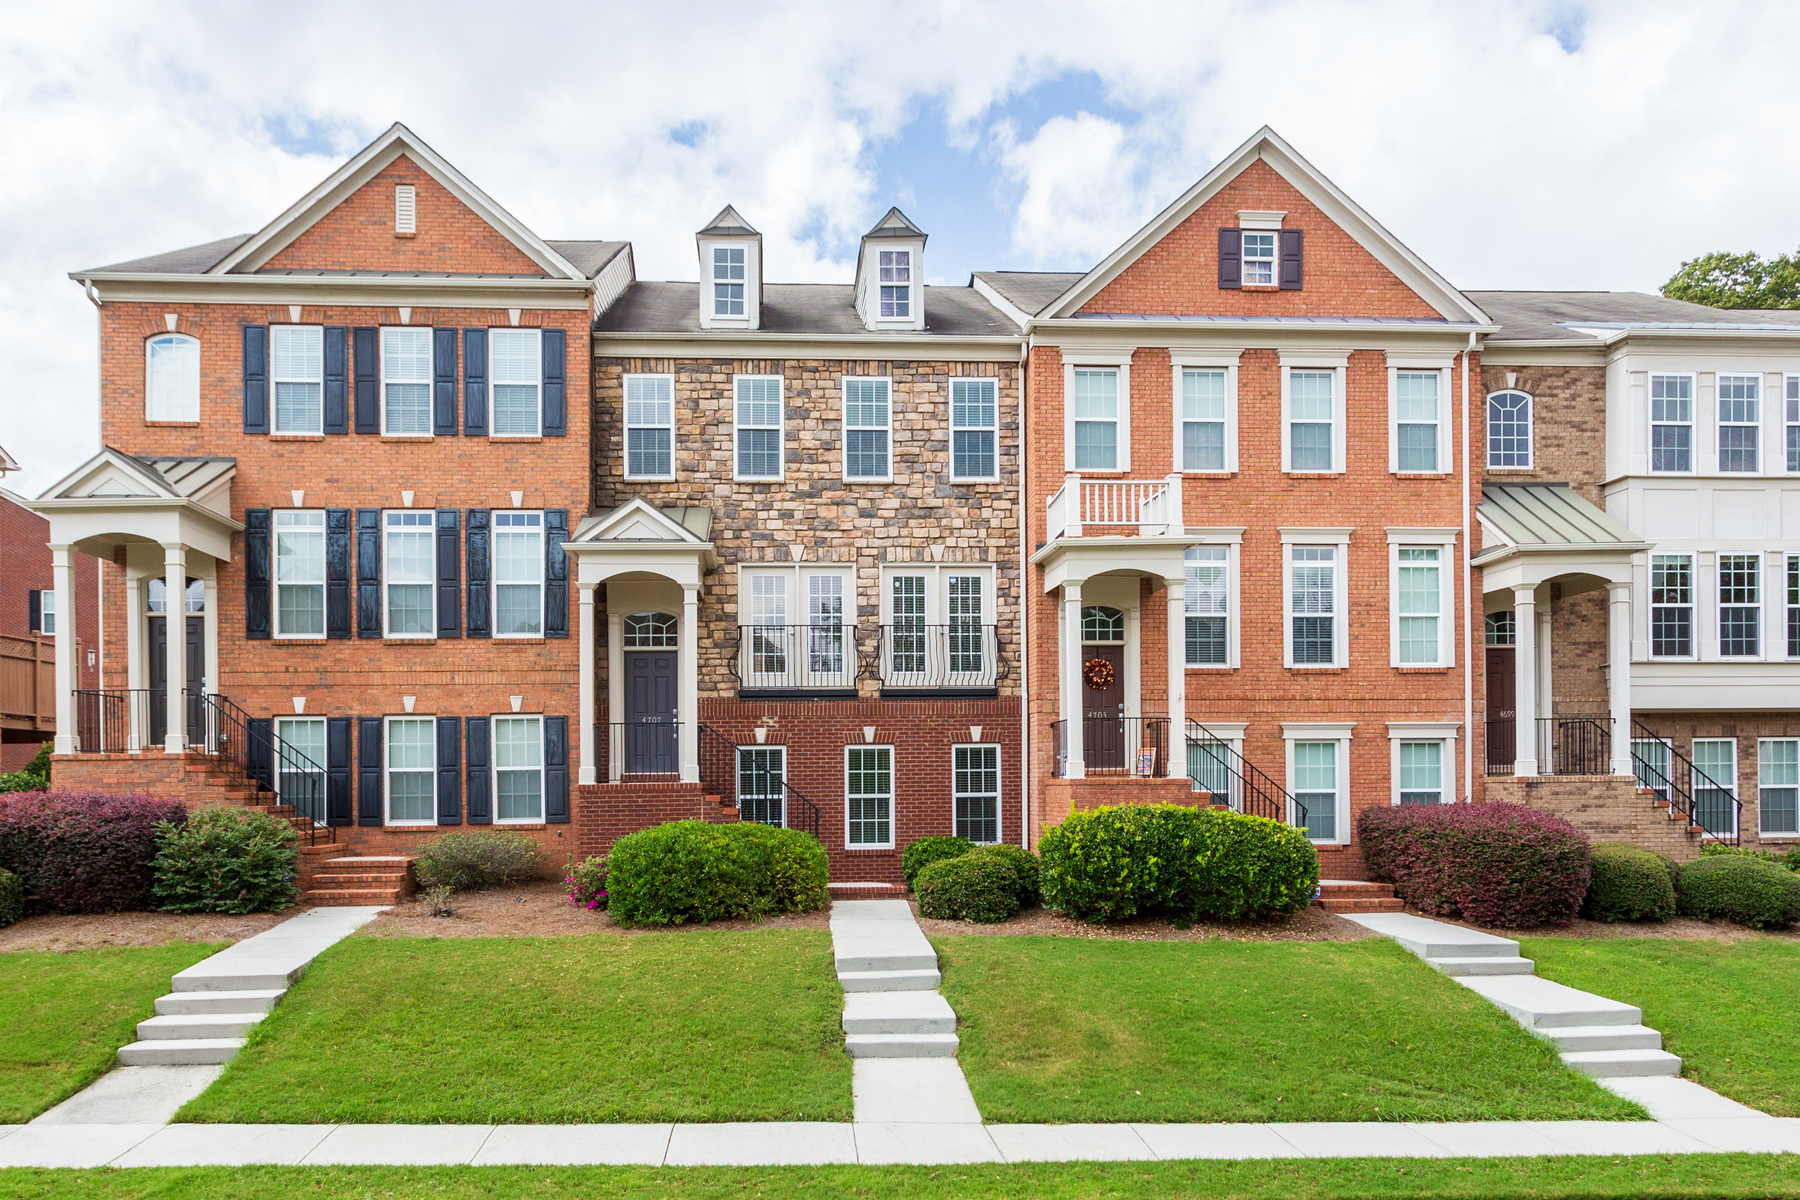 Townhouse for Sale at Spacious Smyrna Townhome 4707 Cheviot Way Smyrna, Georgia 30080 United States